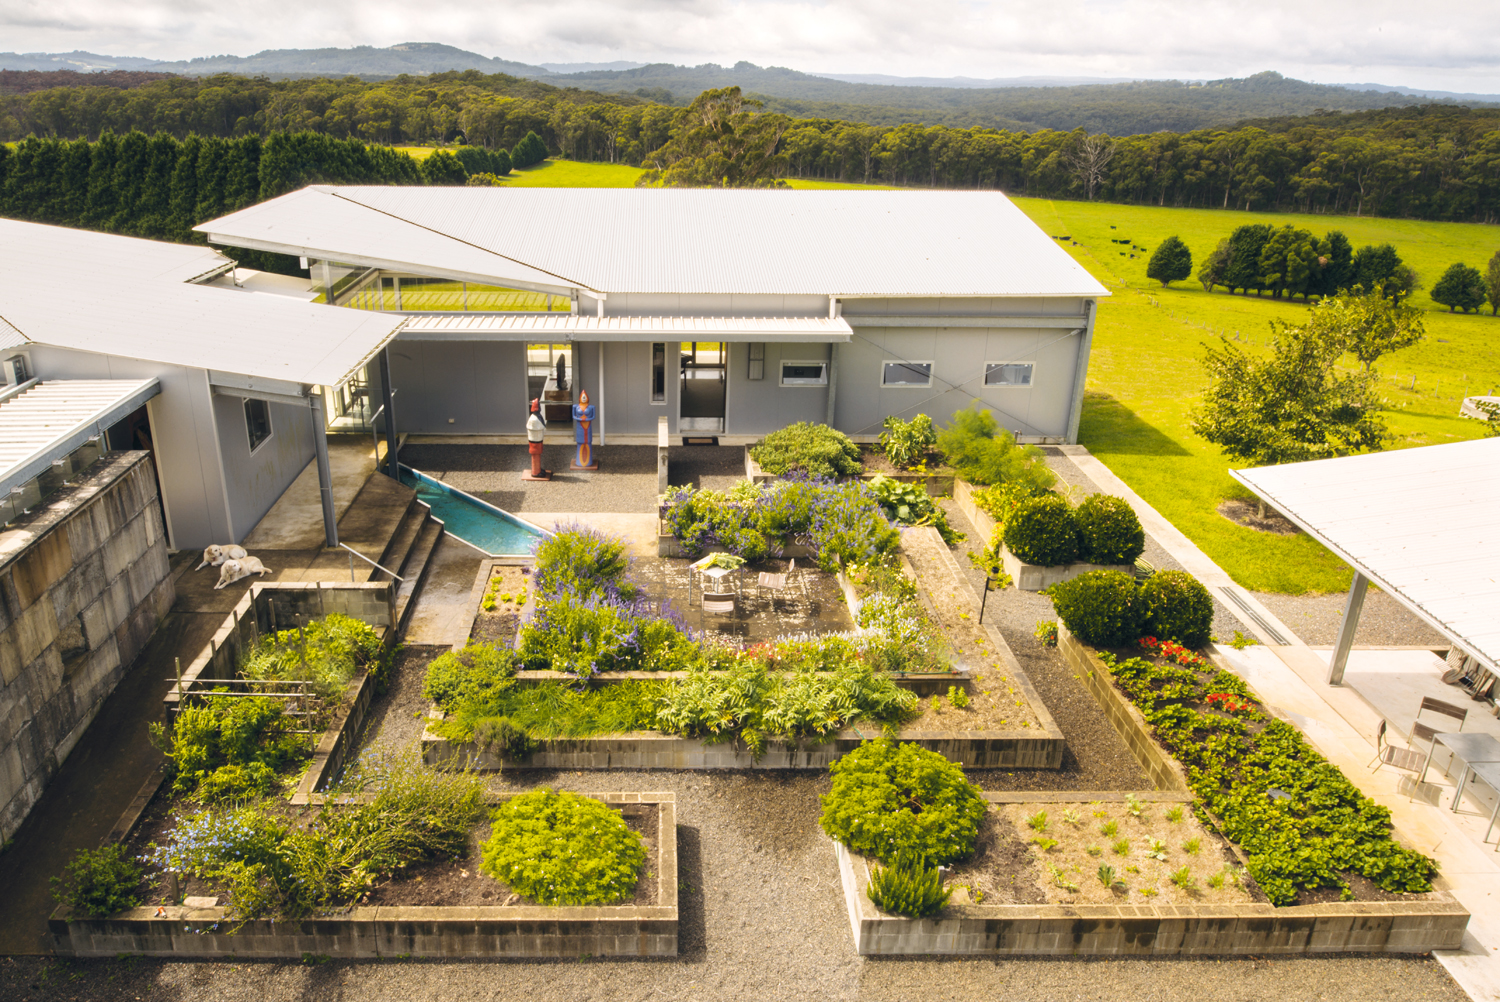 Grand designs australia country grammar completehome Kitchen garden design australia